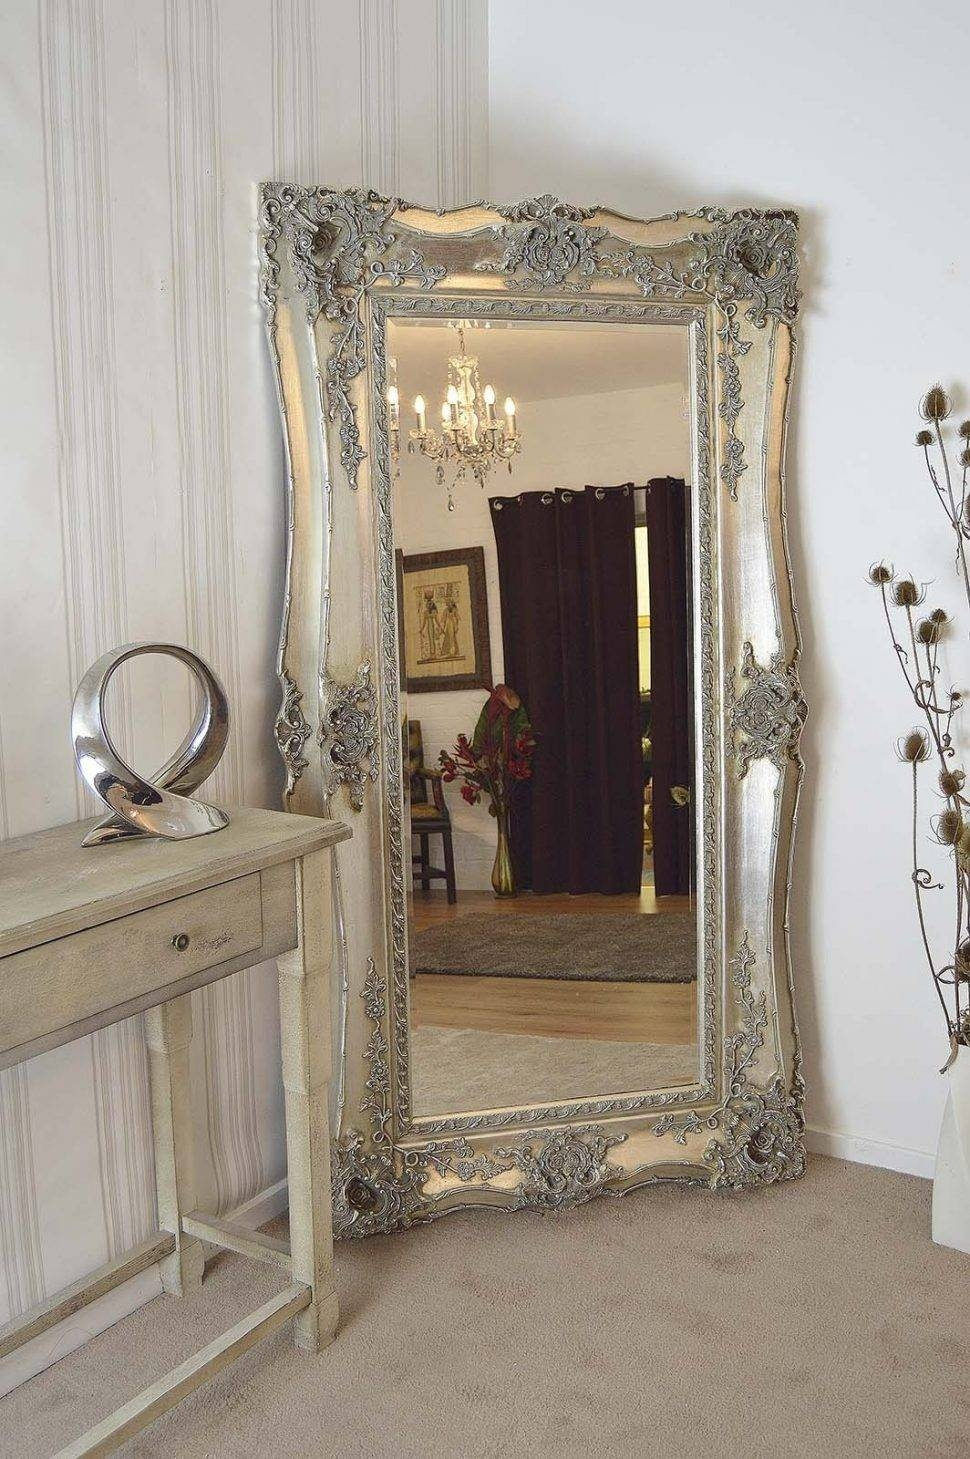 Bedroom Furniture : Large Gold Mirror Free Standing Mirror Wooden within Large Free Standing Mirrors (Image 2 of 15)